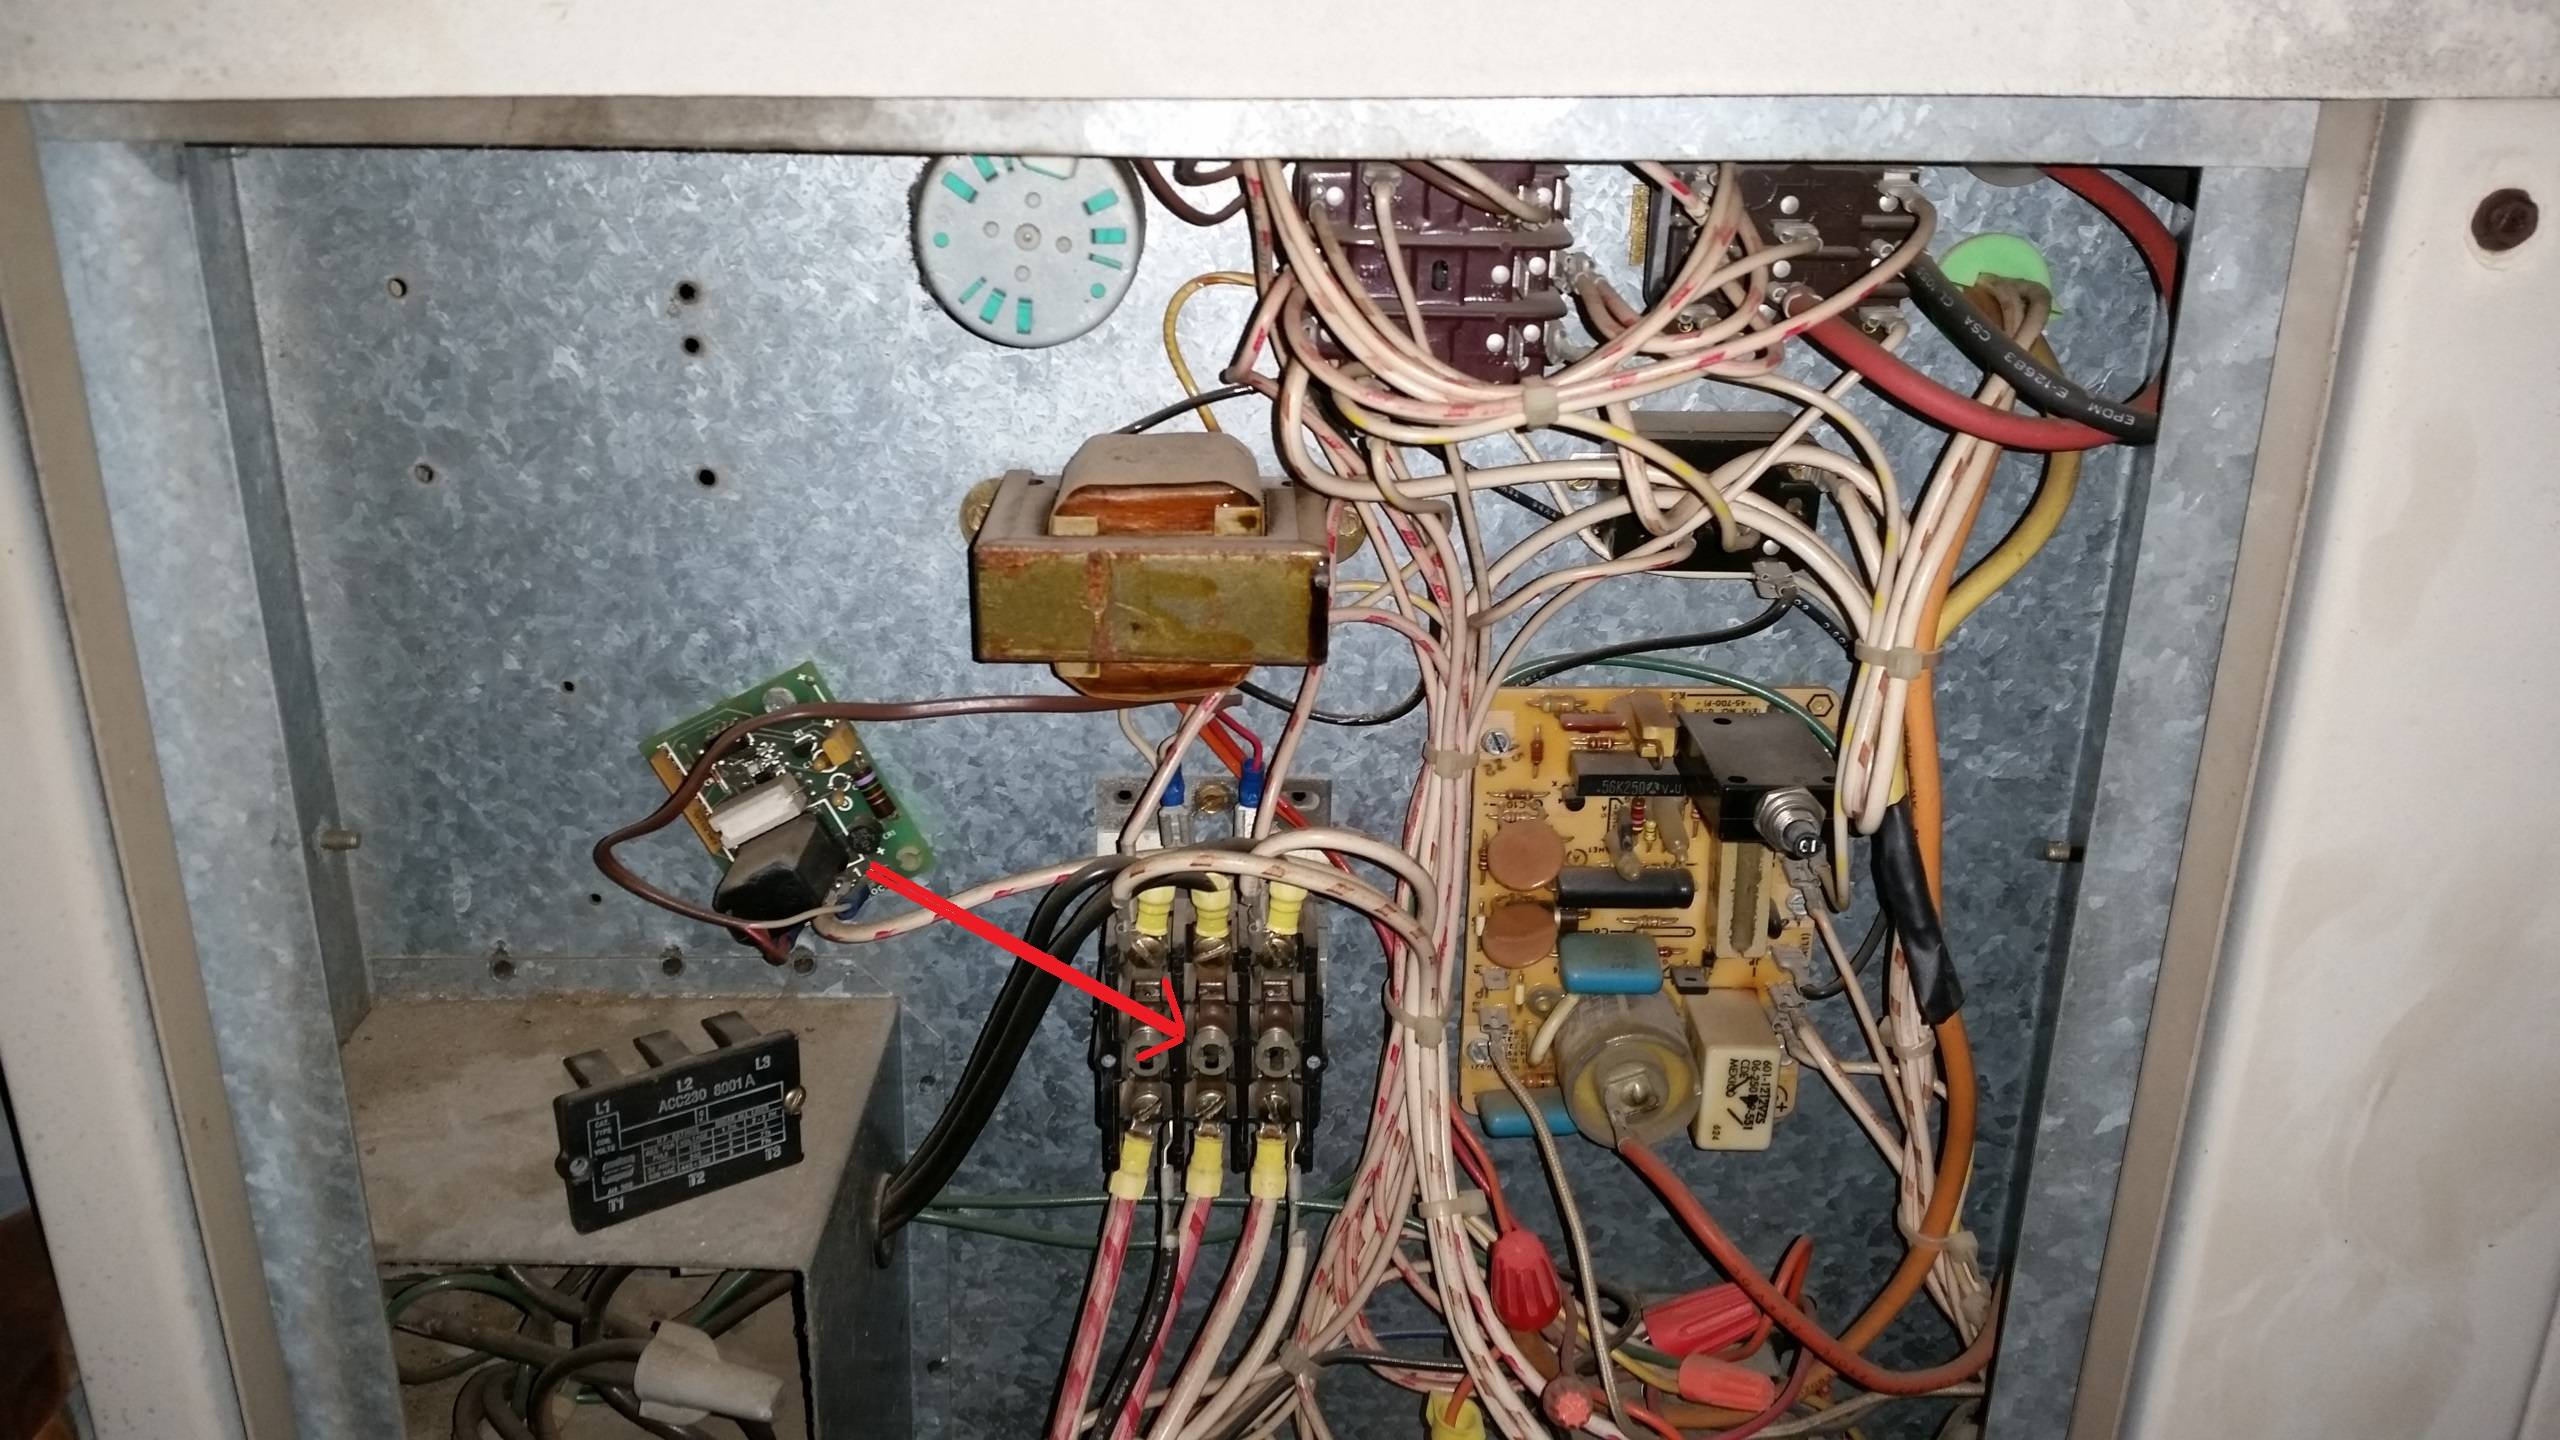 Hard Start Capacitor Wiring Diagram Hvac Temporary Fix For Bad Contactor Home Improvement